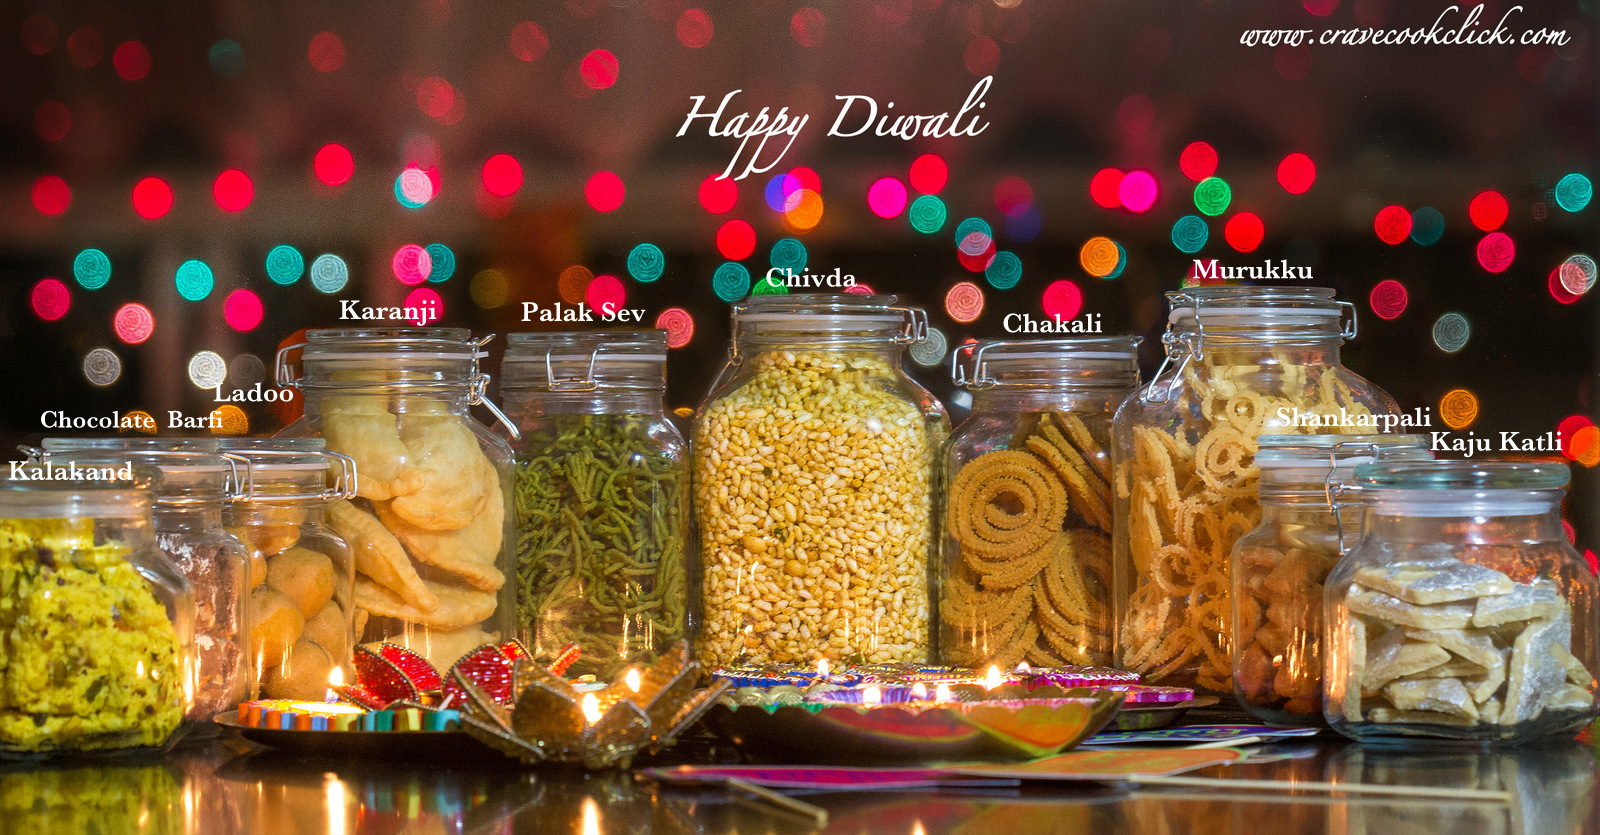 laxmipujan, sev recipe, kalakand recipe, diwali2017, diwalirecipes, diwali celebrations, saree, indian festivals